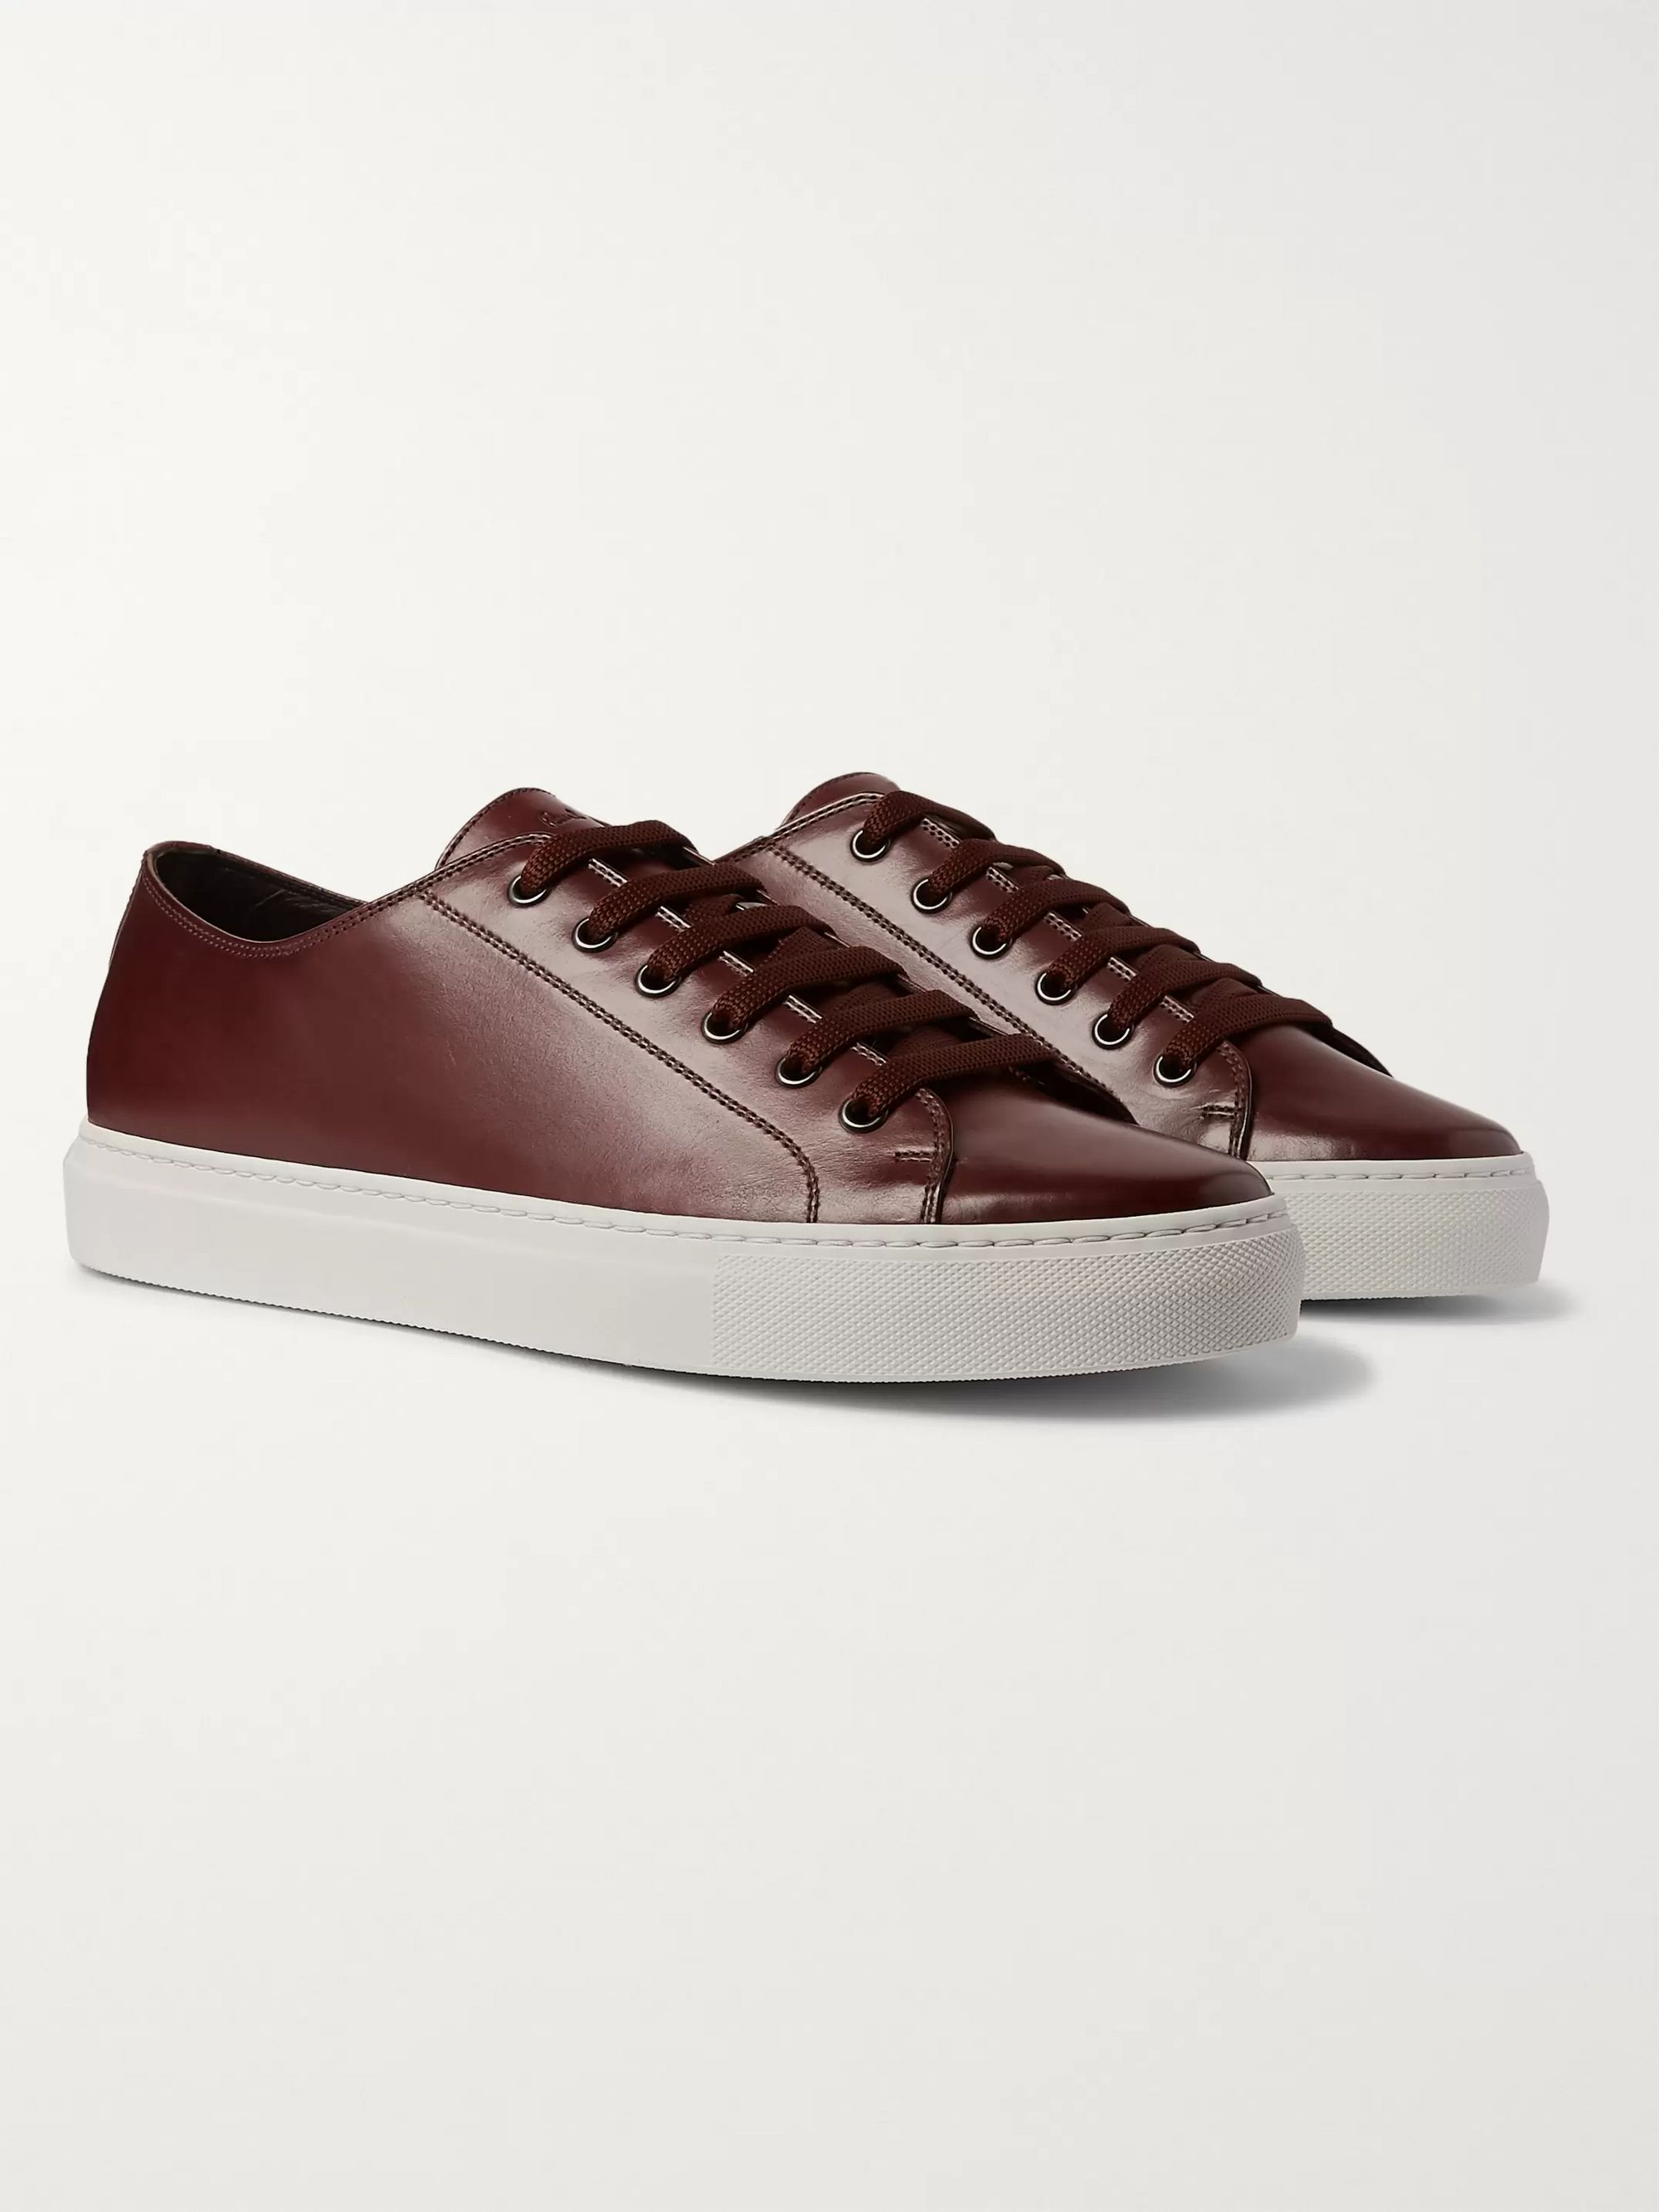 Sotto Burnished Leather Sneakers by Paul Smith